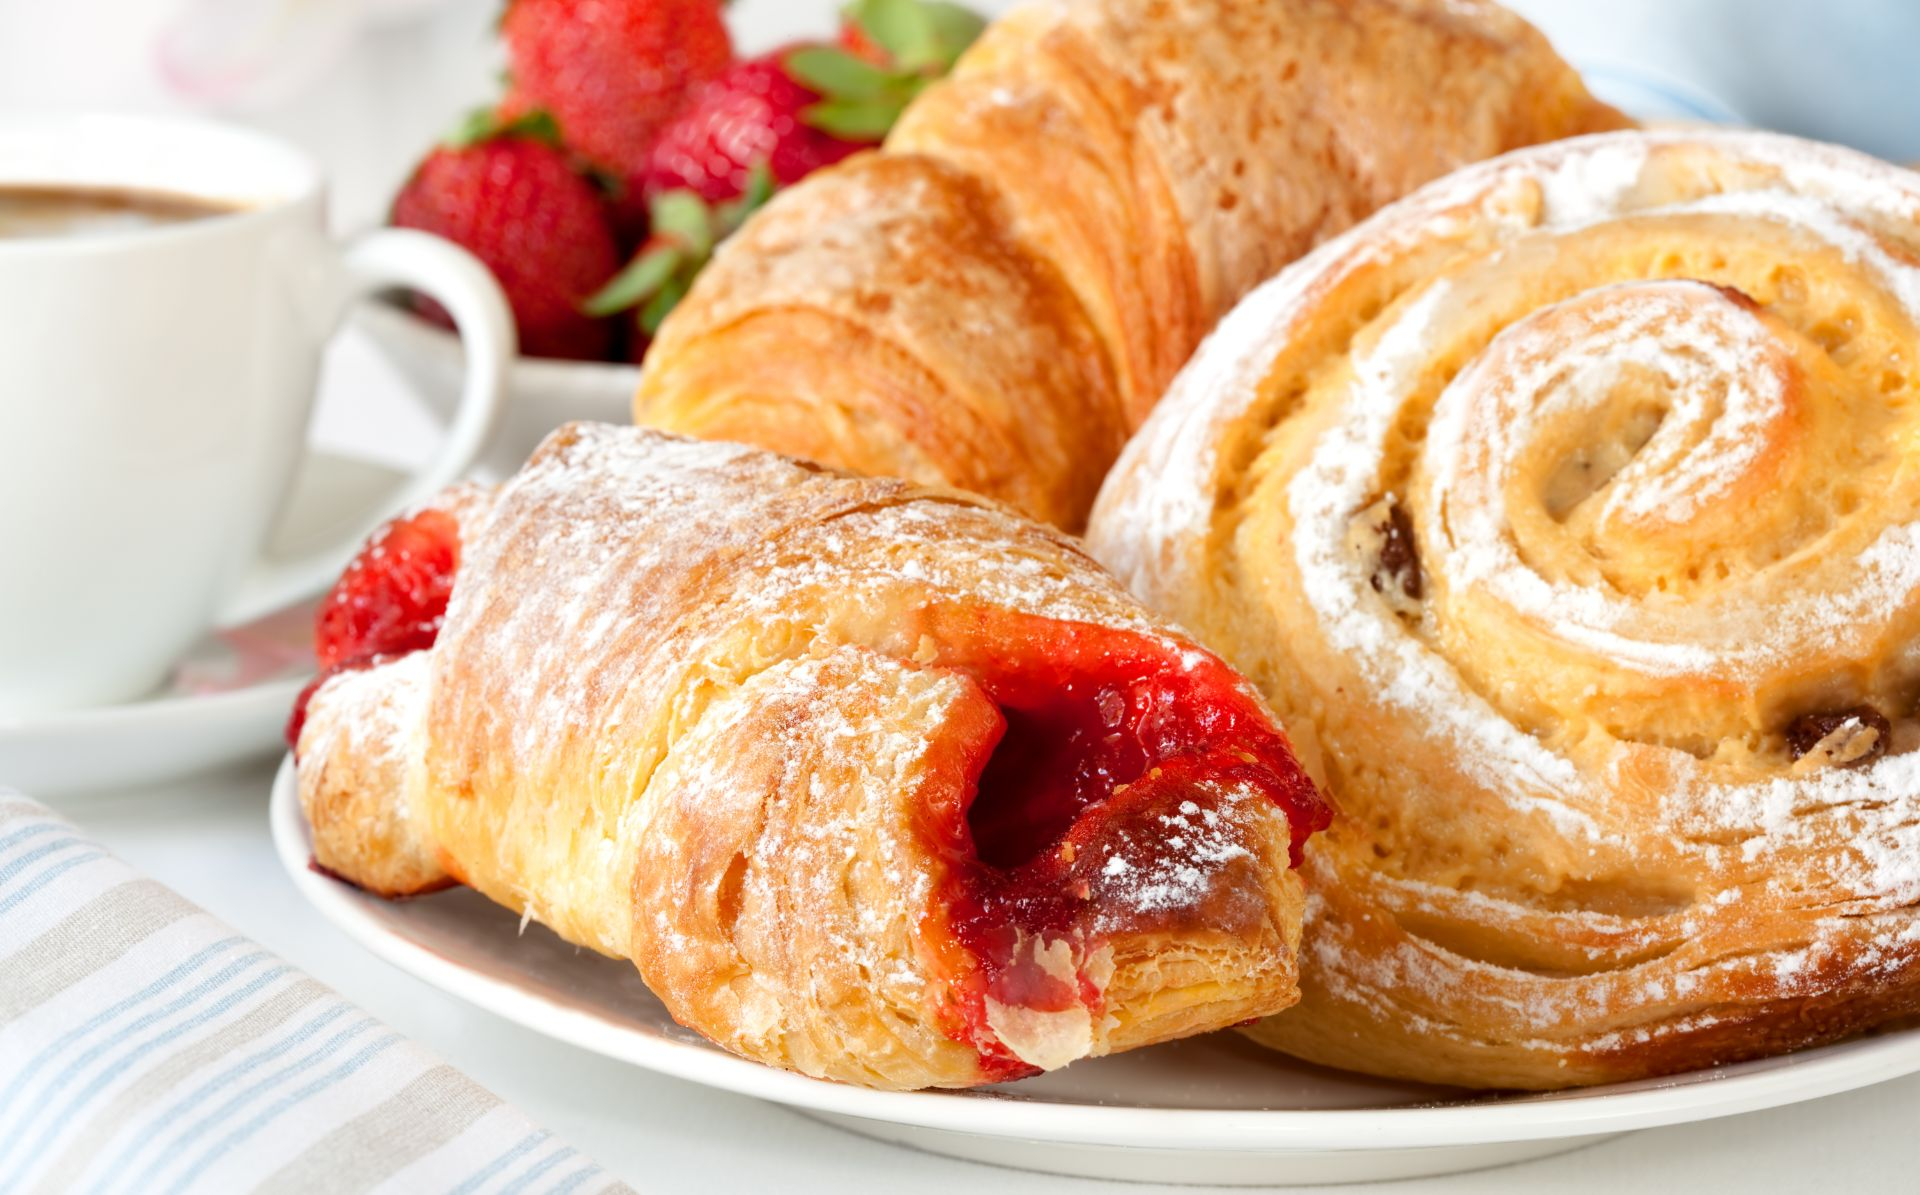 assorted pastries on a plate